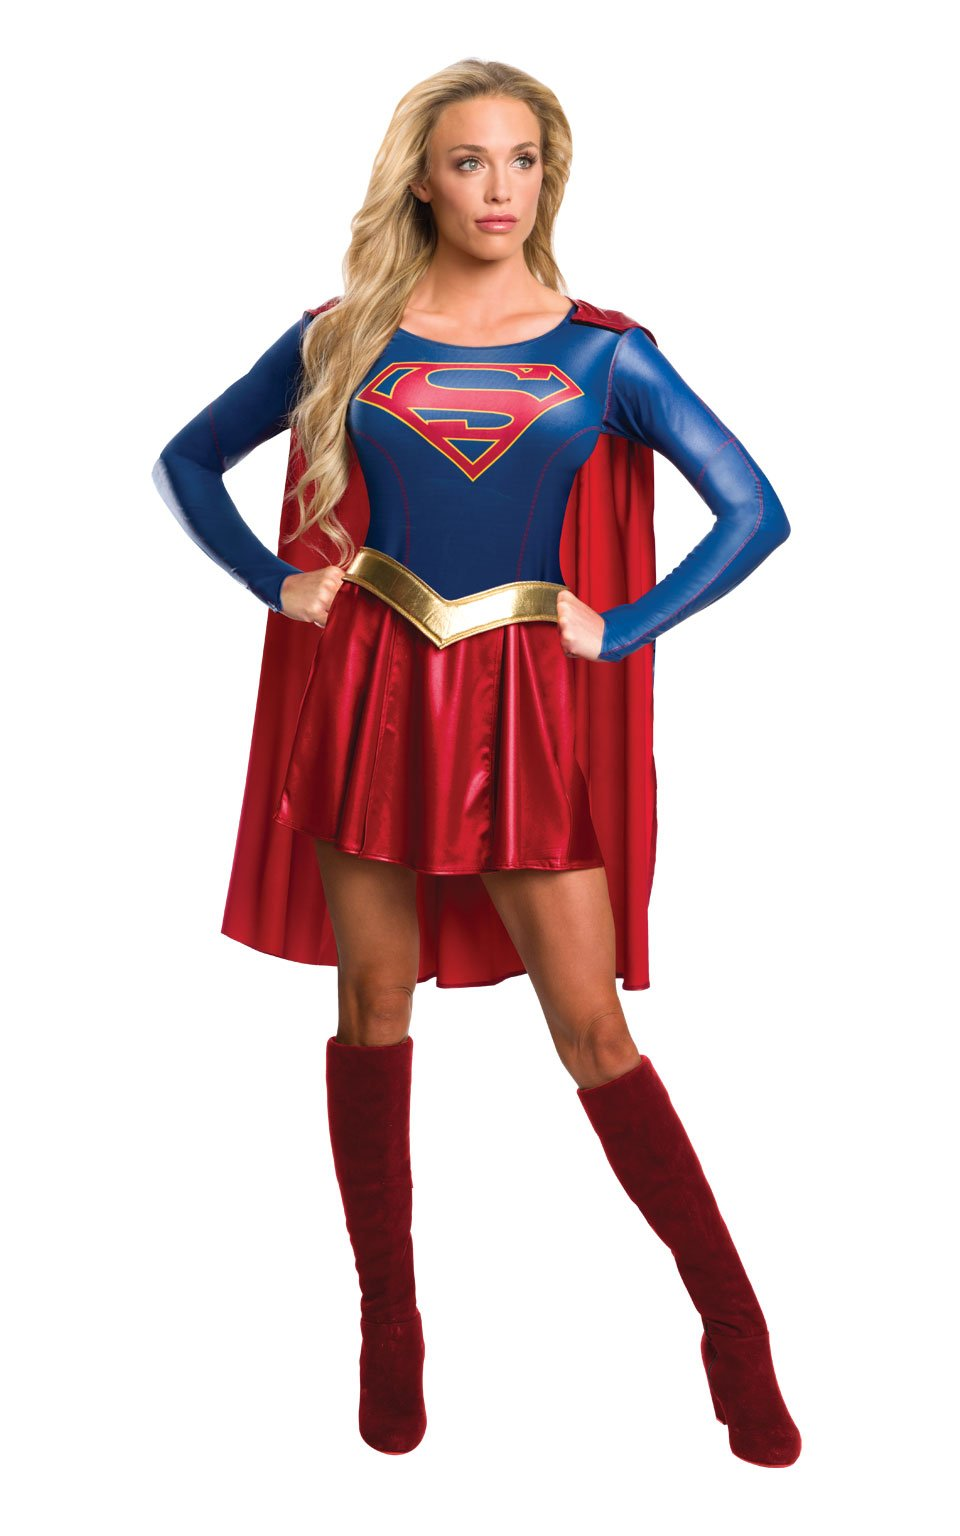 Rubieu0027s Official Supergirl Ladies Fancy Dress Superhero Womens Adults Super Girl Costume Outfit  sc 1 st  Amazon UK & Superhero Costumes for Women: Amazon.co.uk